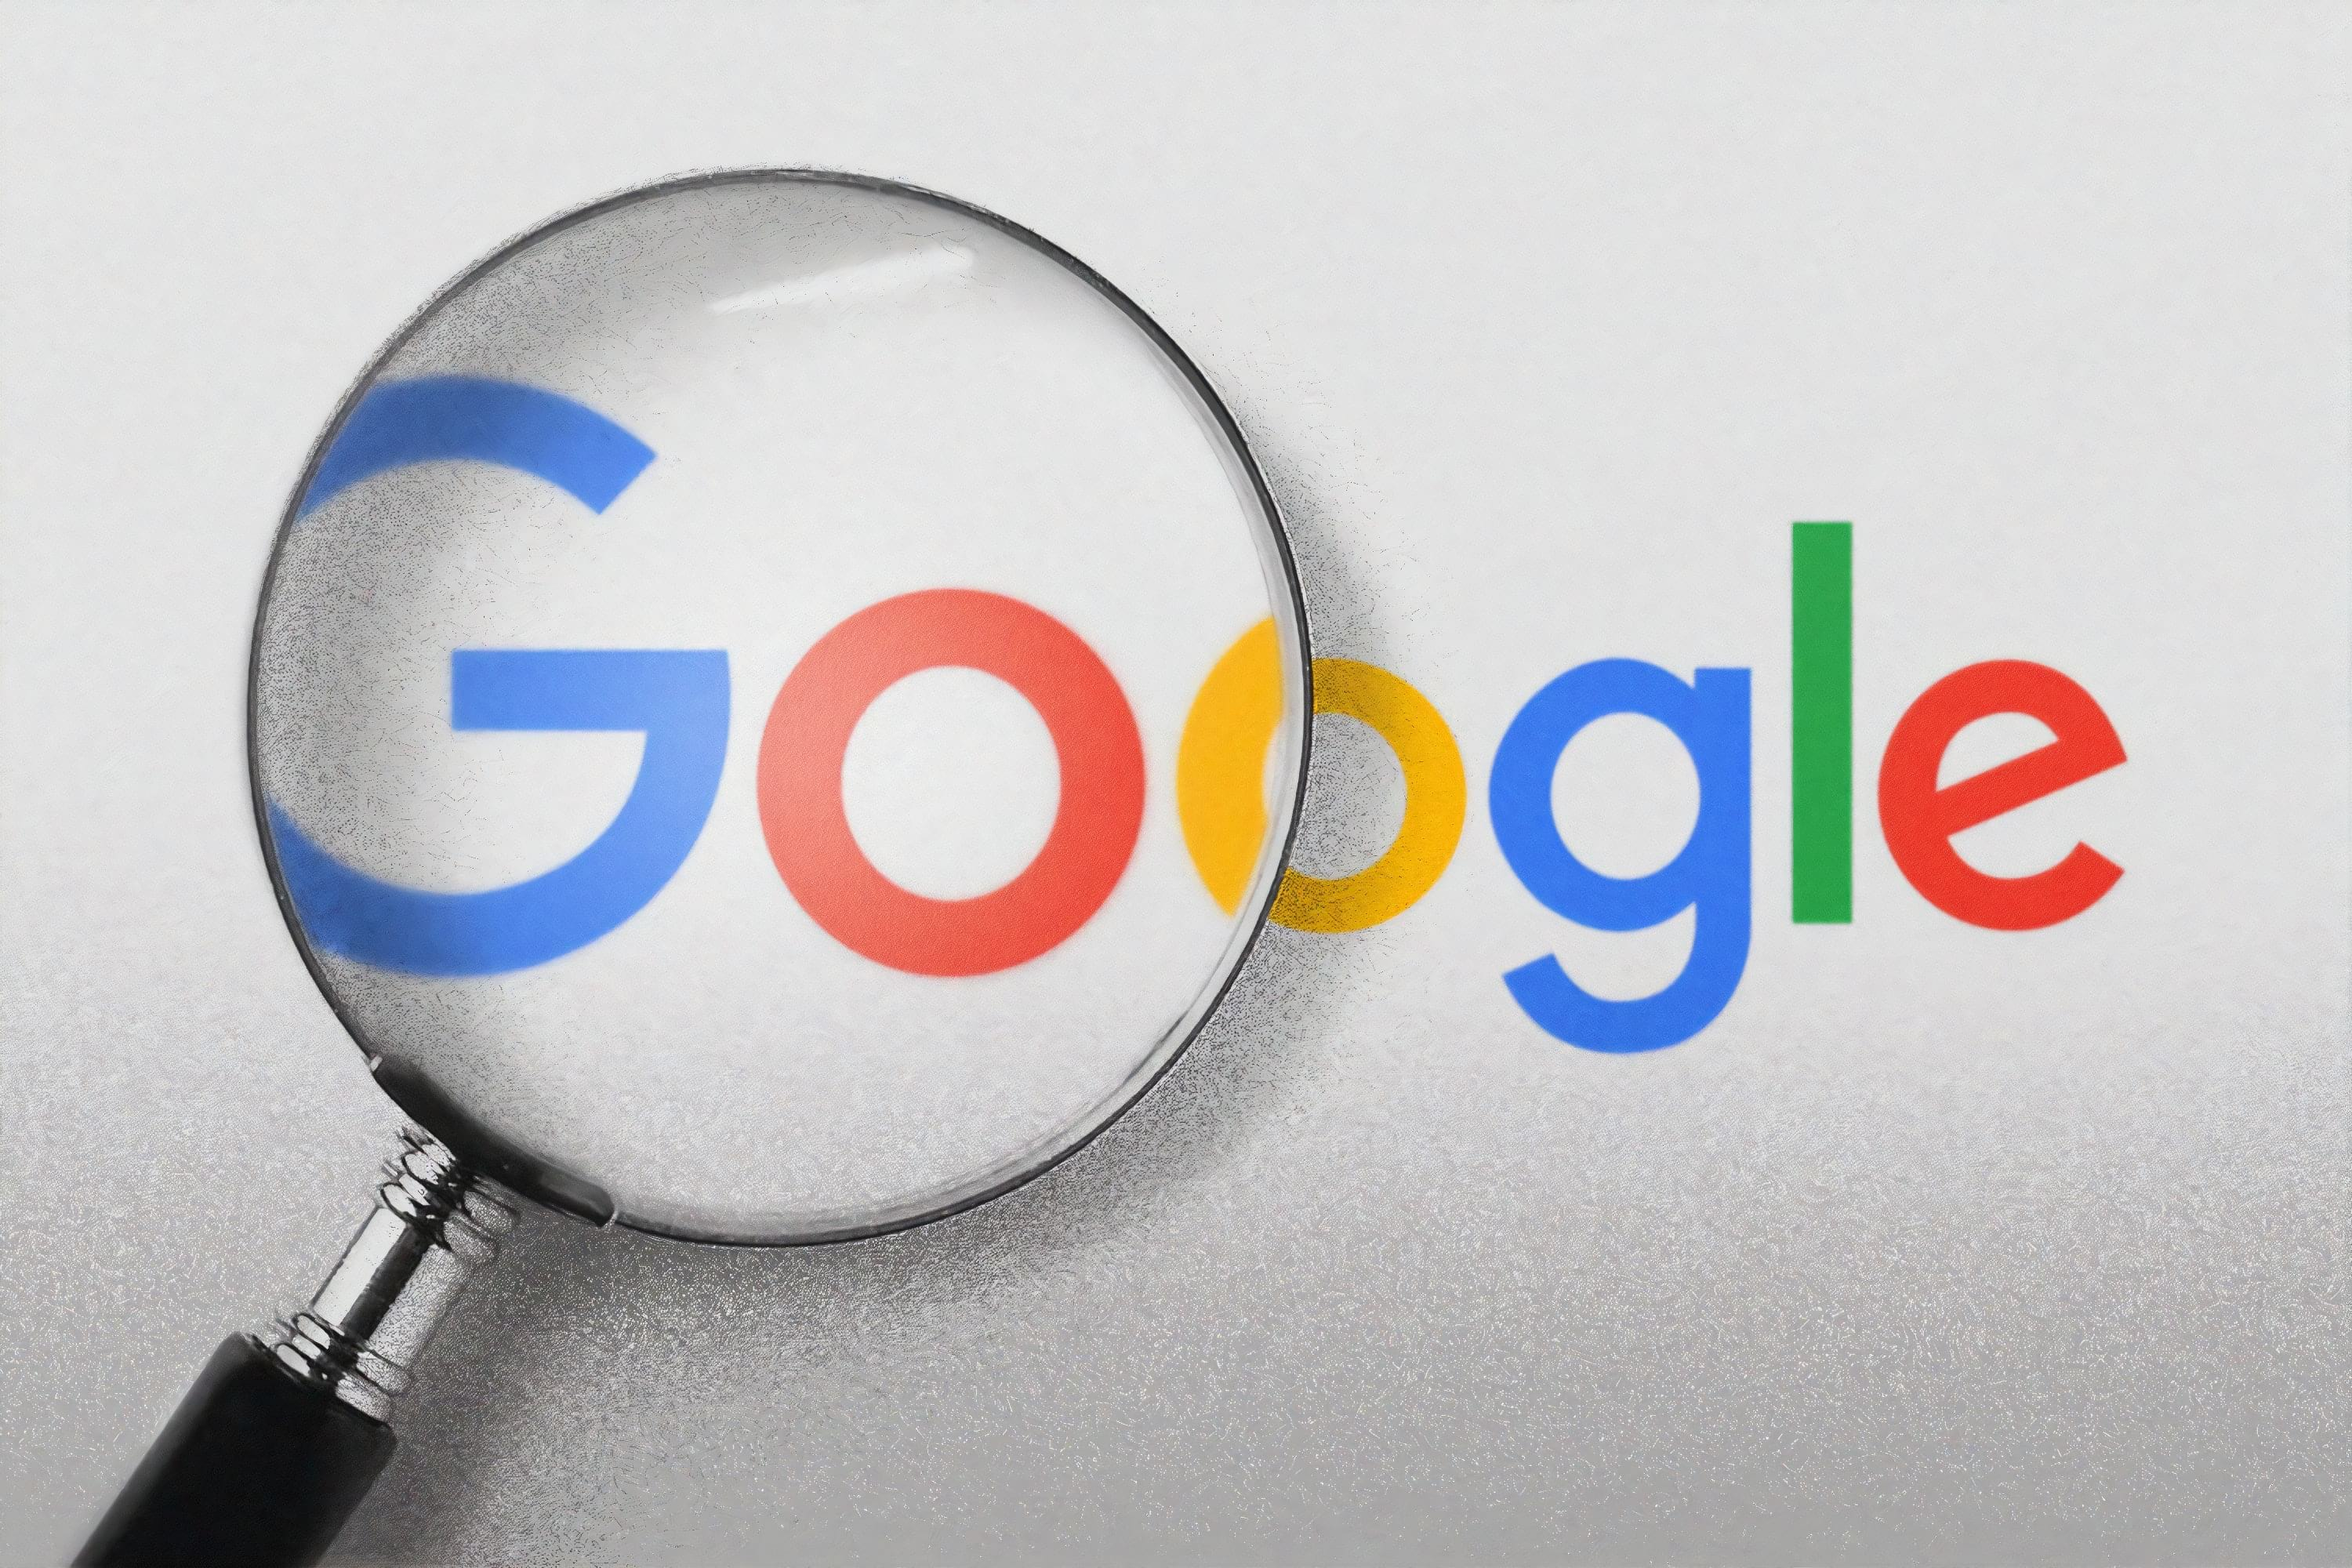 Google logo with a magnifying glass